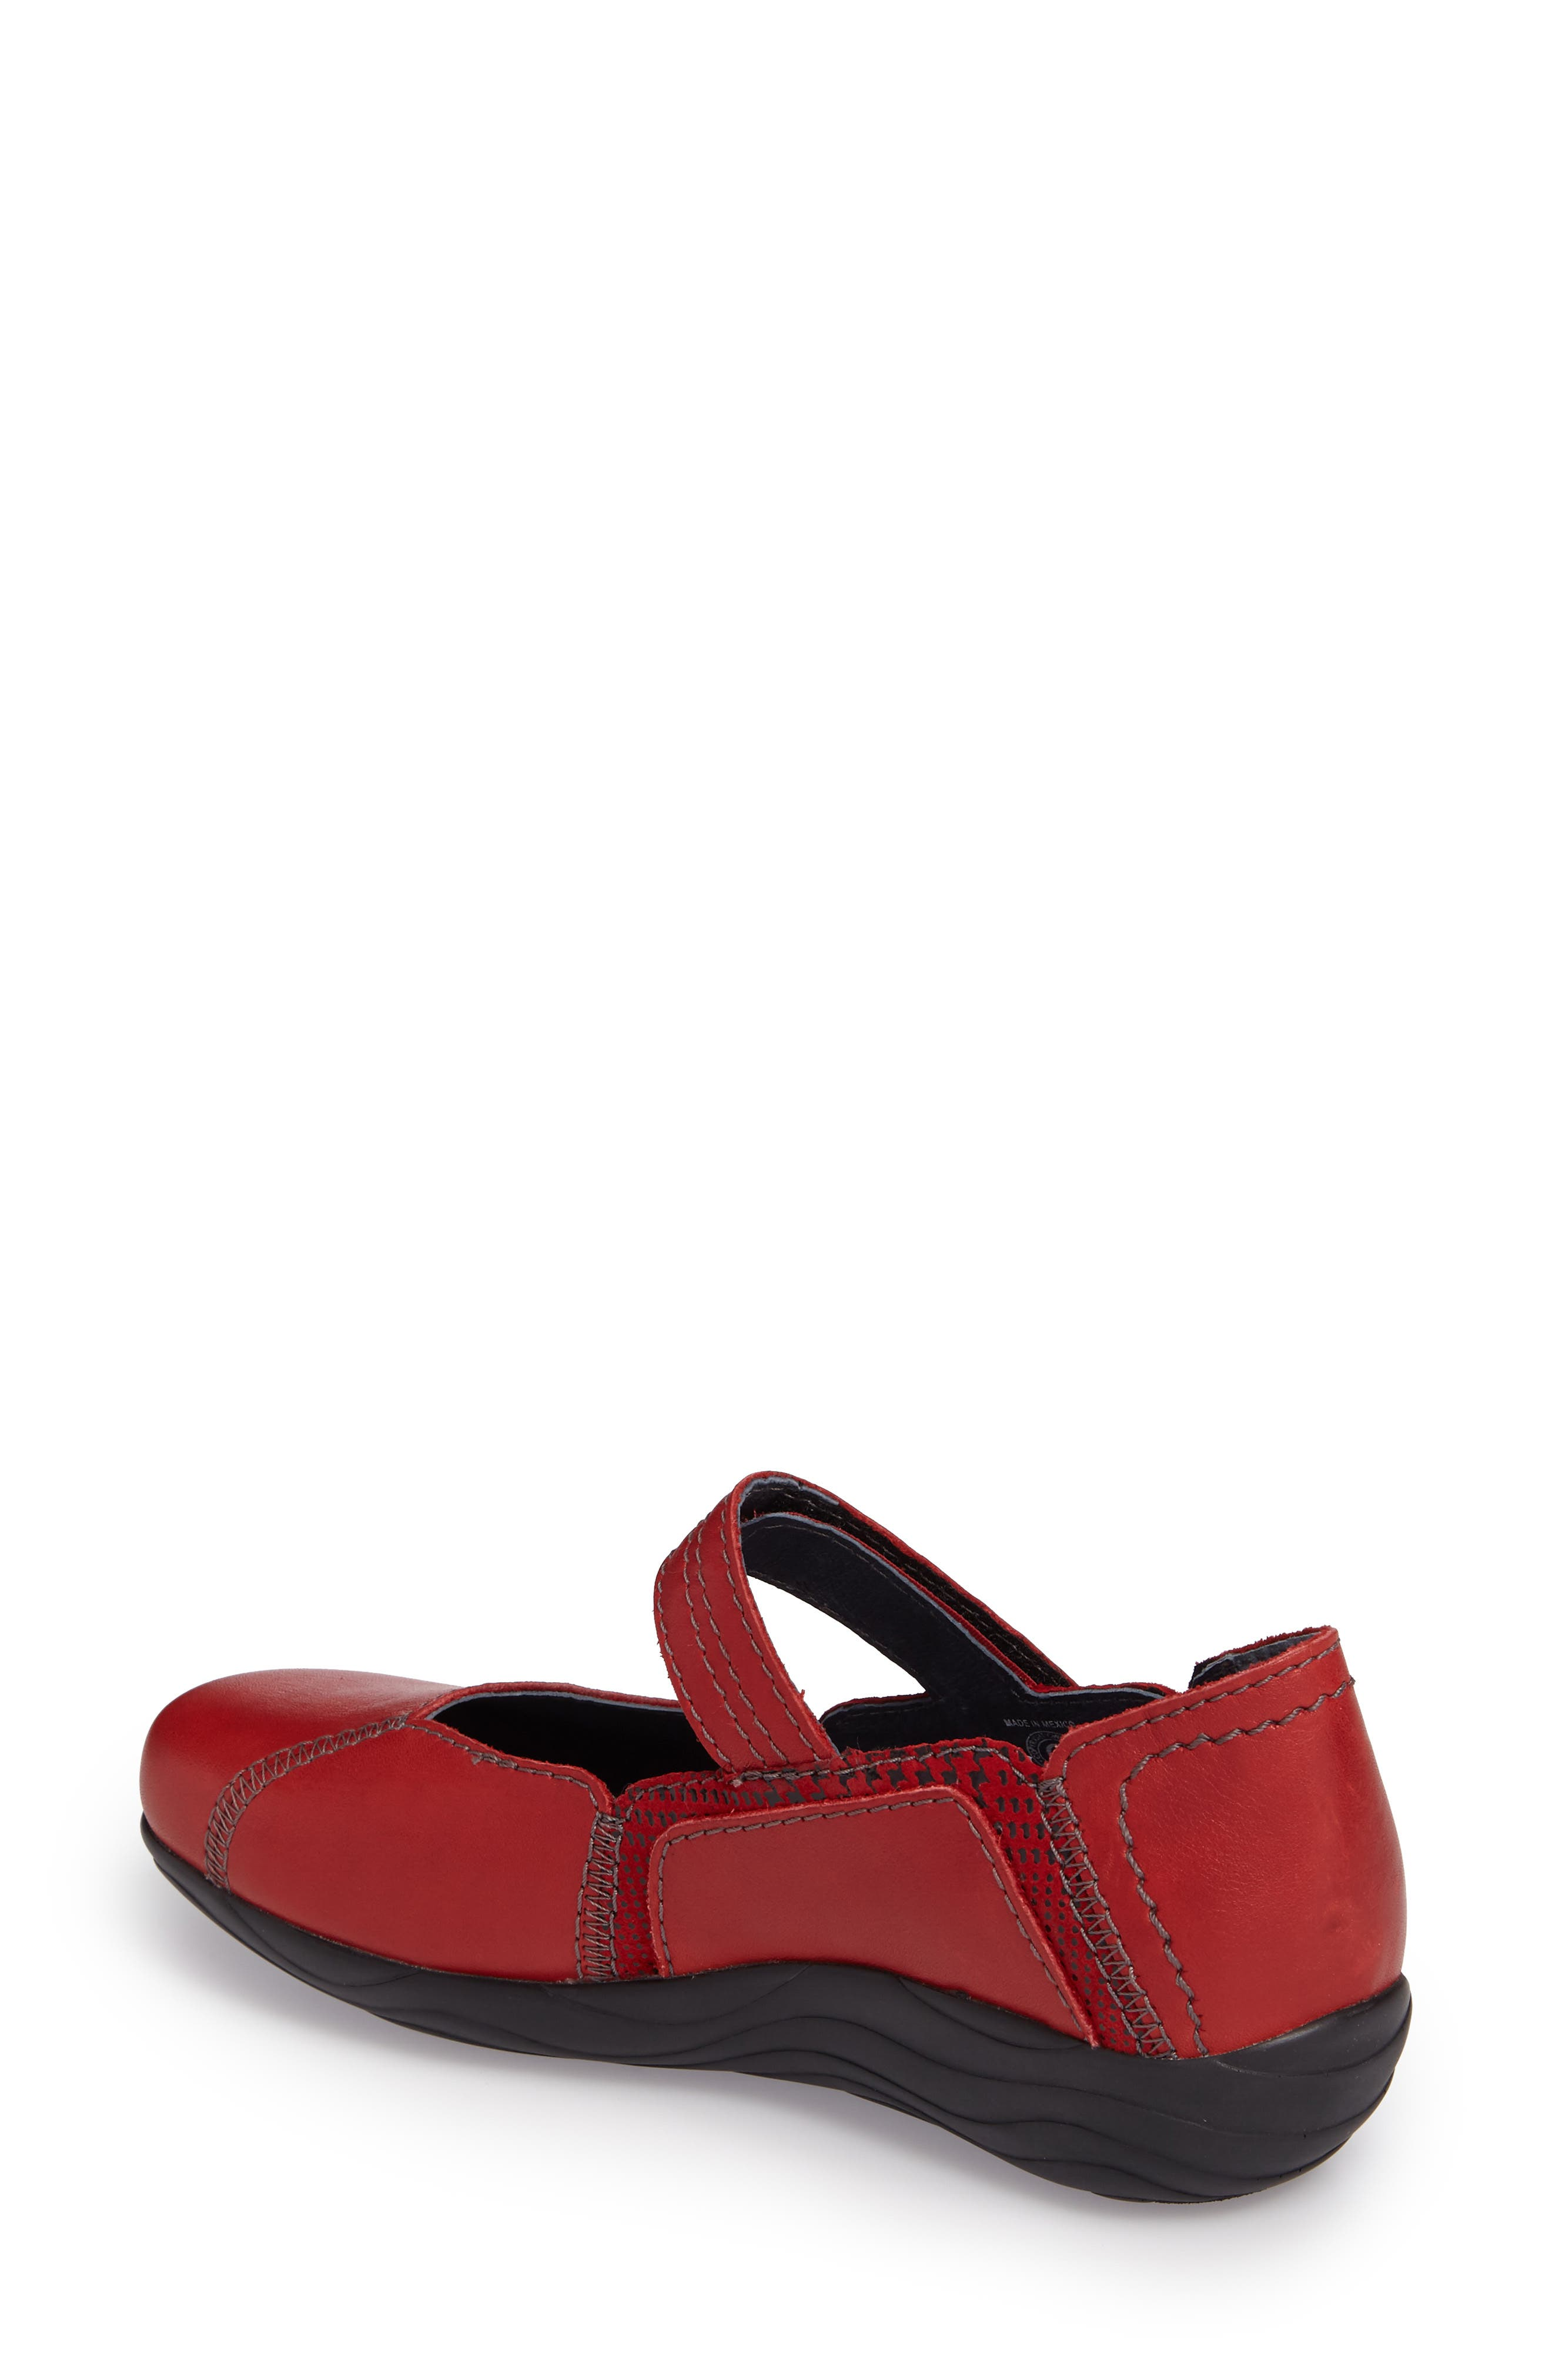 Gila Mary-Jane Flat,                             Alternate thumbnail 2, color,                             RED LEATHER